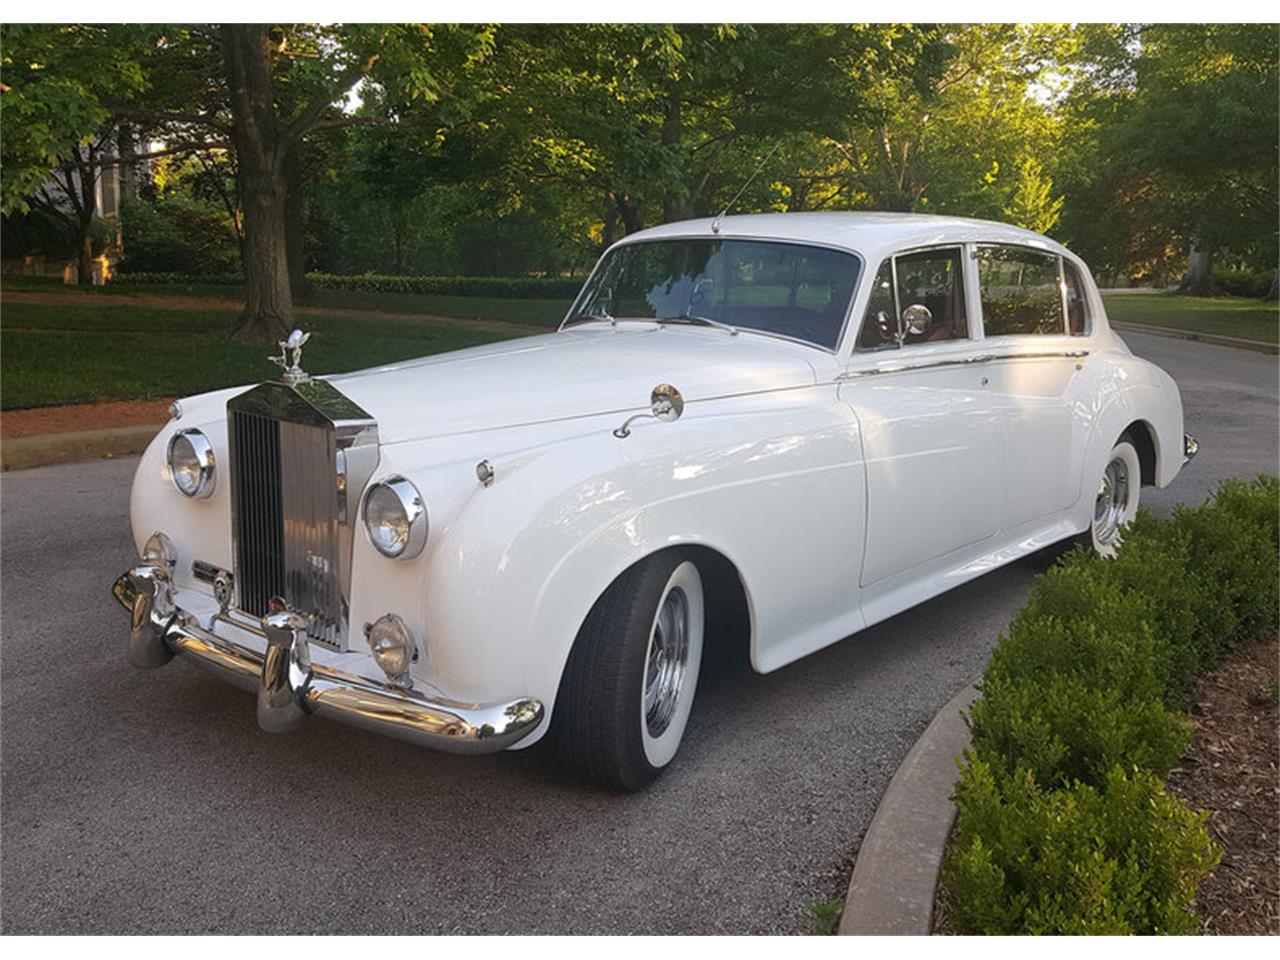 Large Picture of Classic '62 Bentley S2 located in Dallas Texas Auction Vehicle Offered by Leake Auction Company - OO67